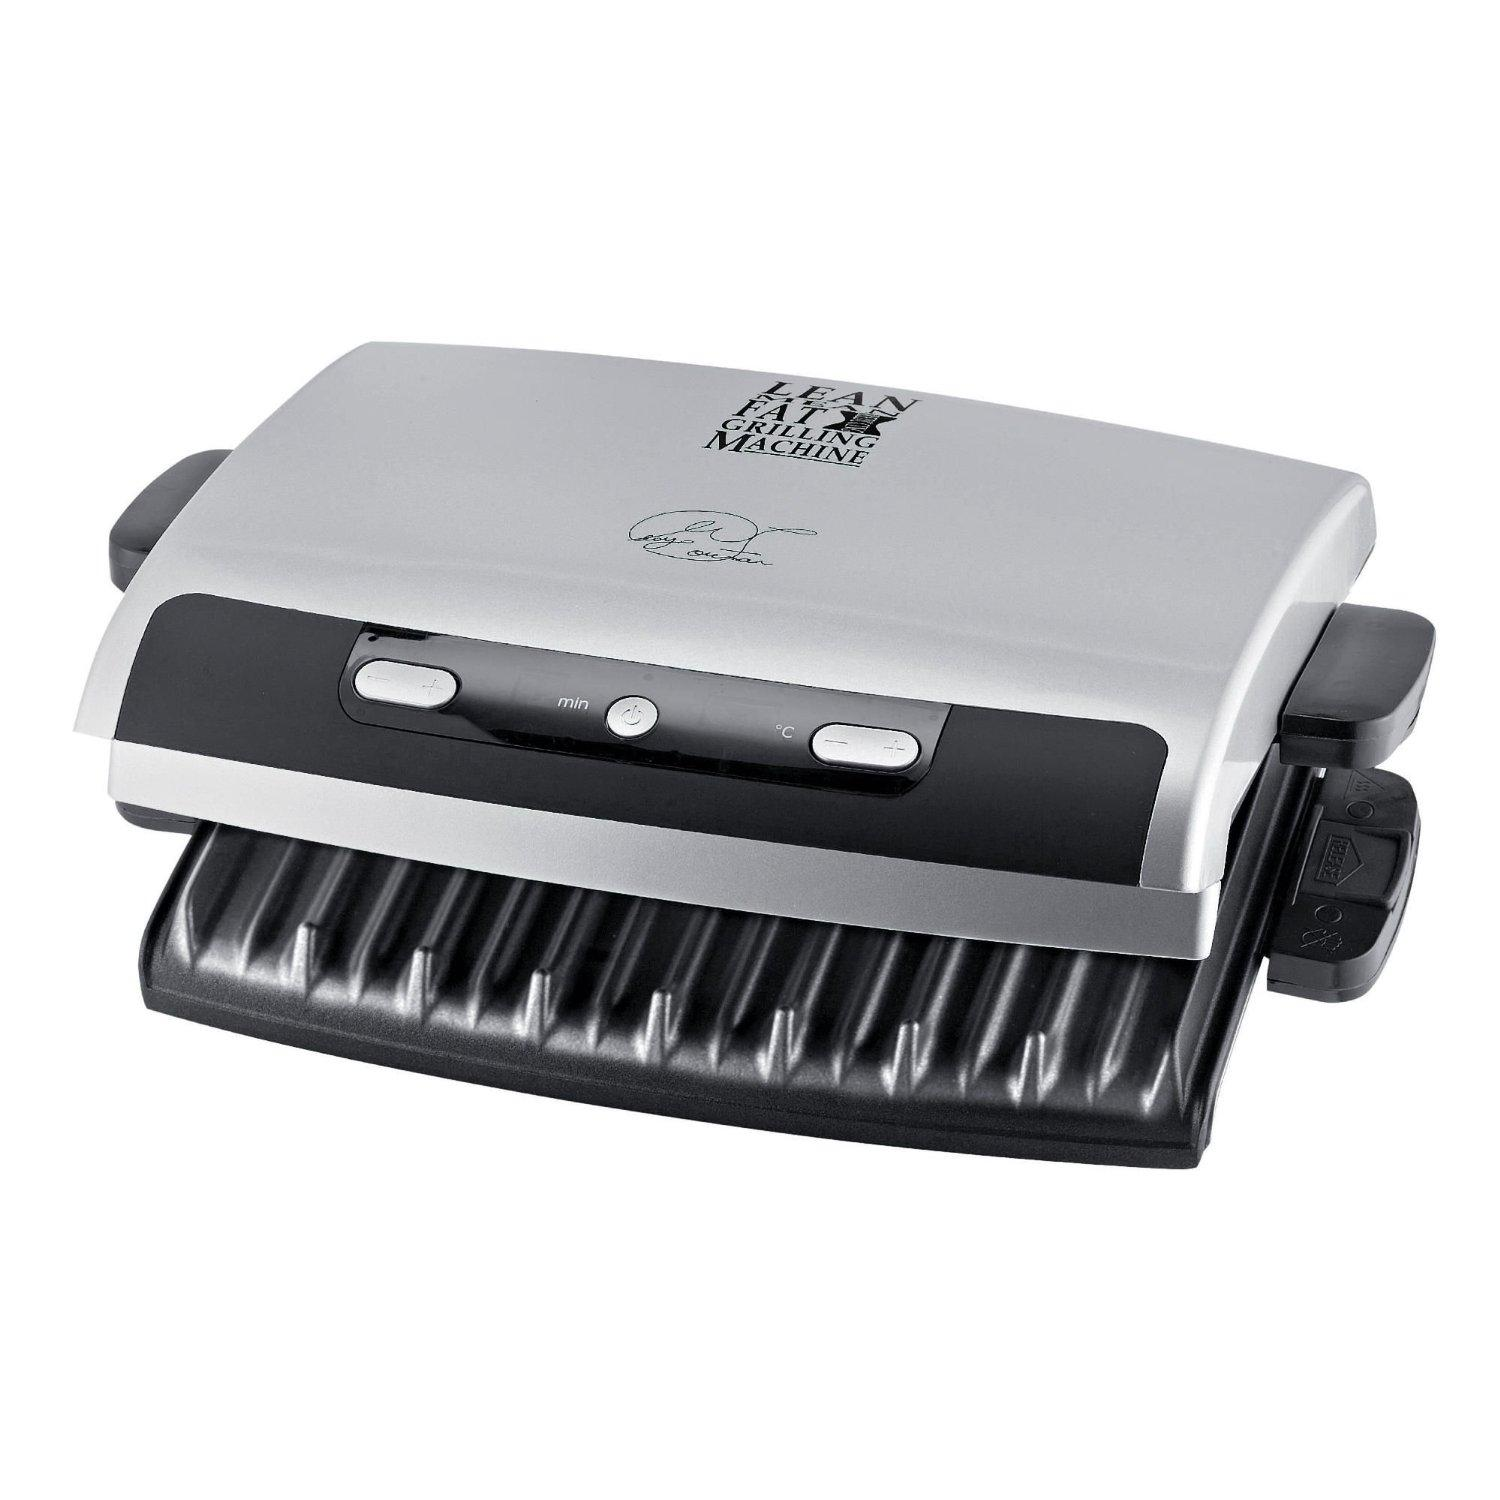 George Foreman - 12205 - Grill family réducteur de graisse 6 portions